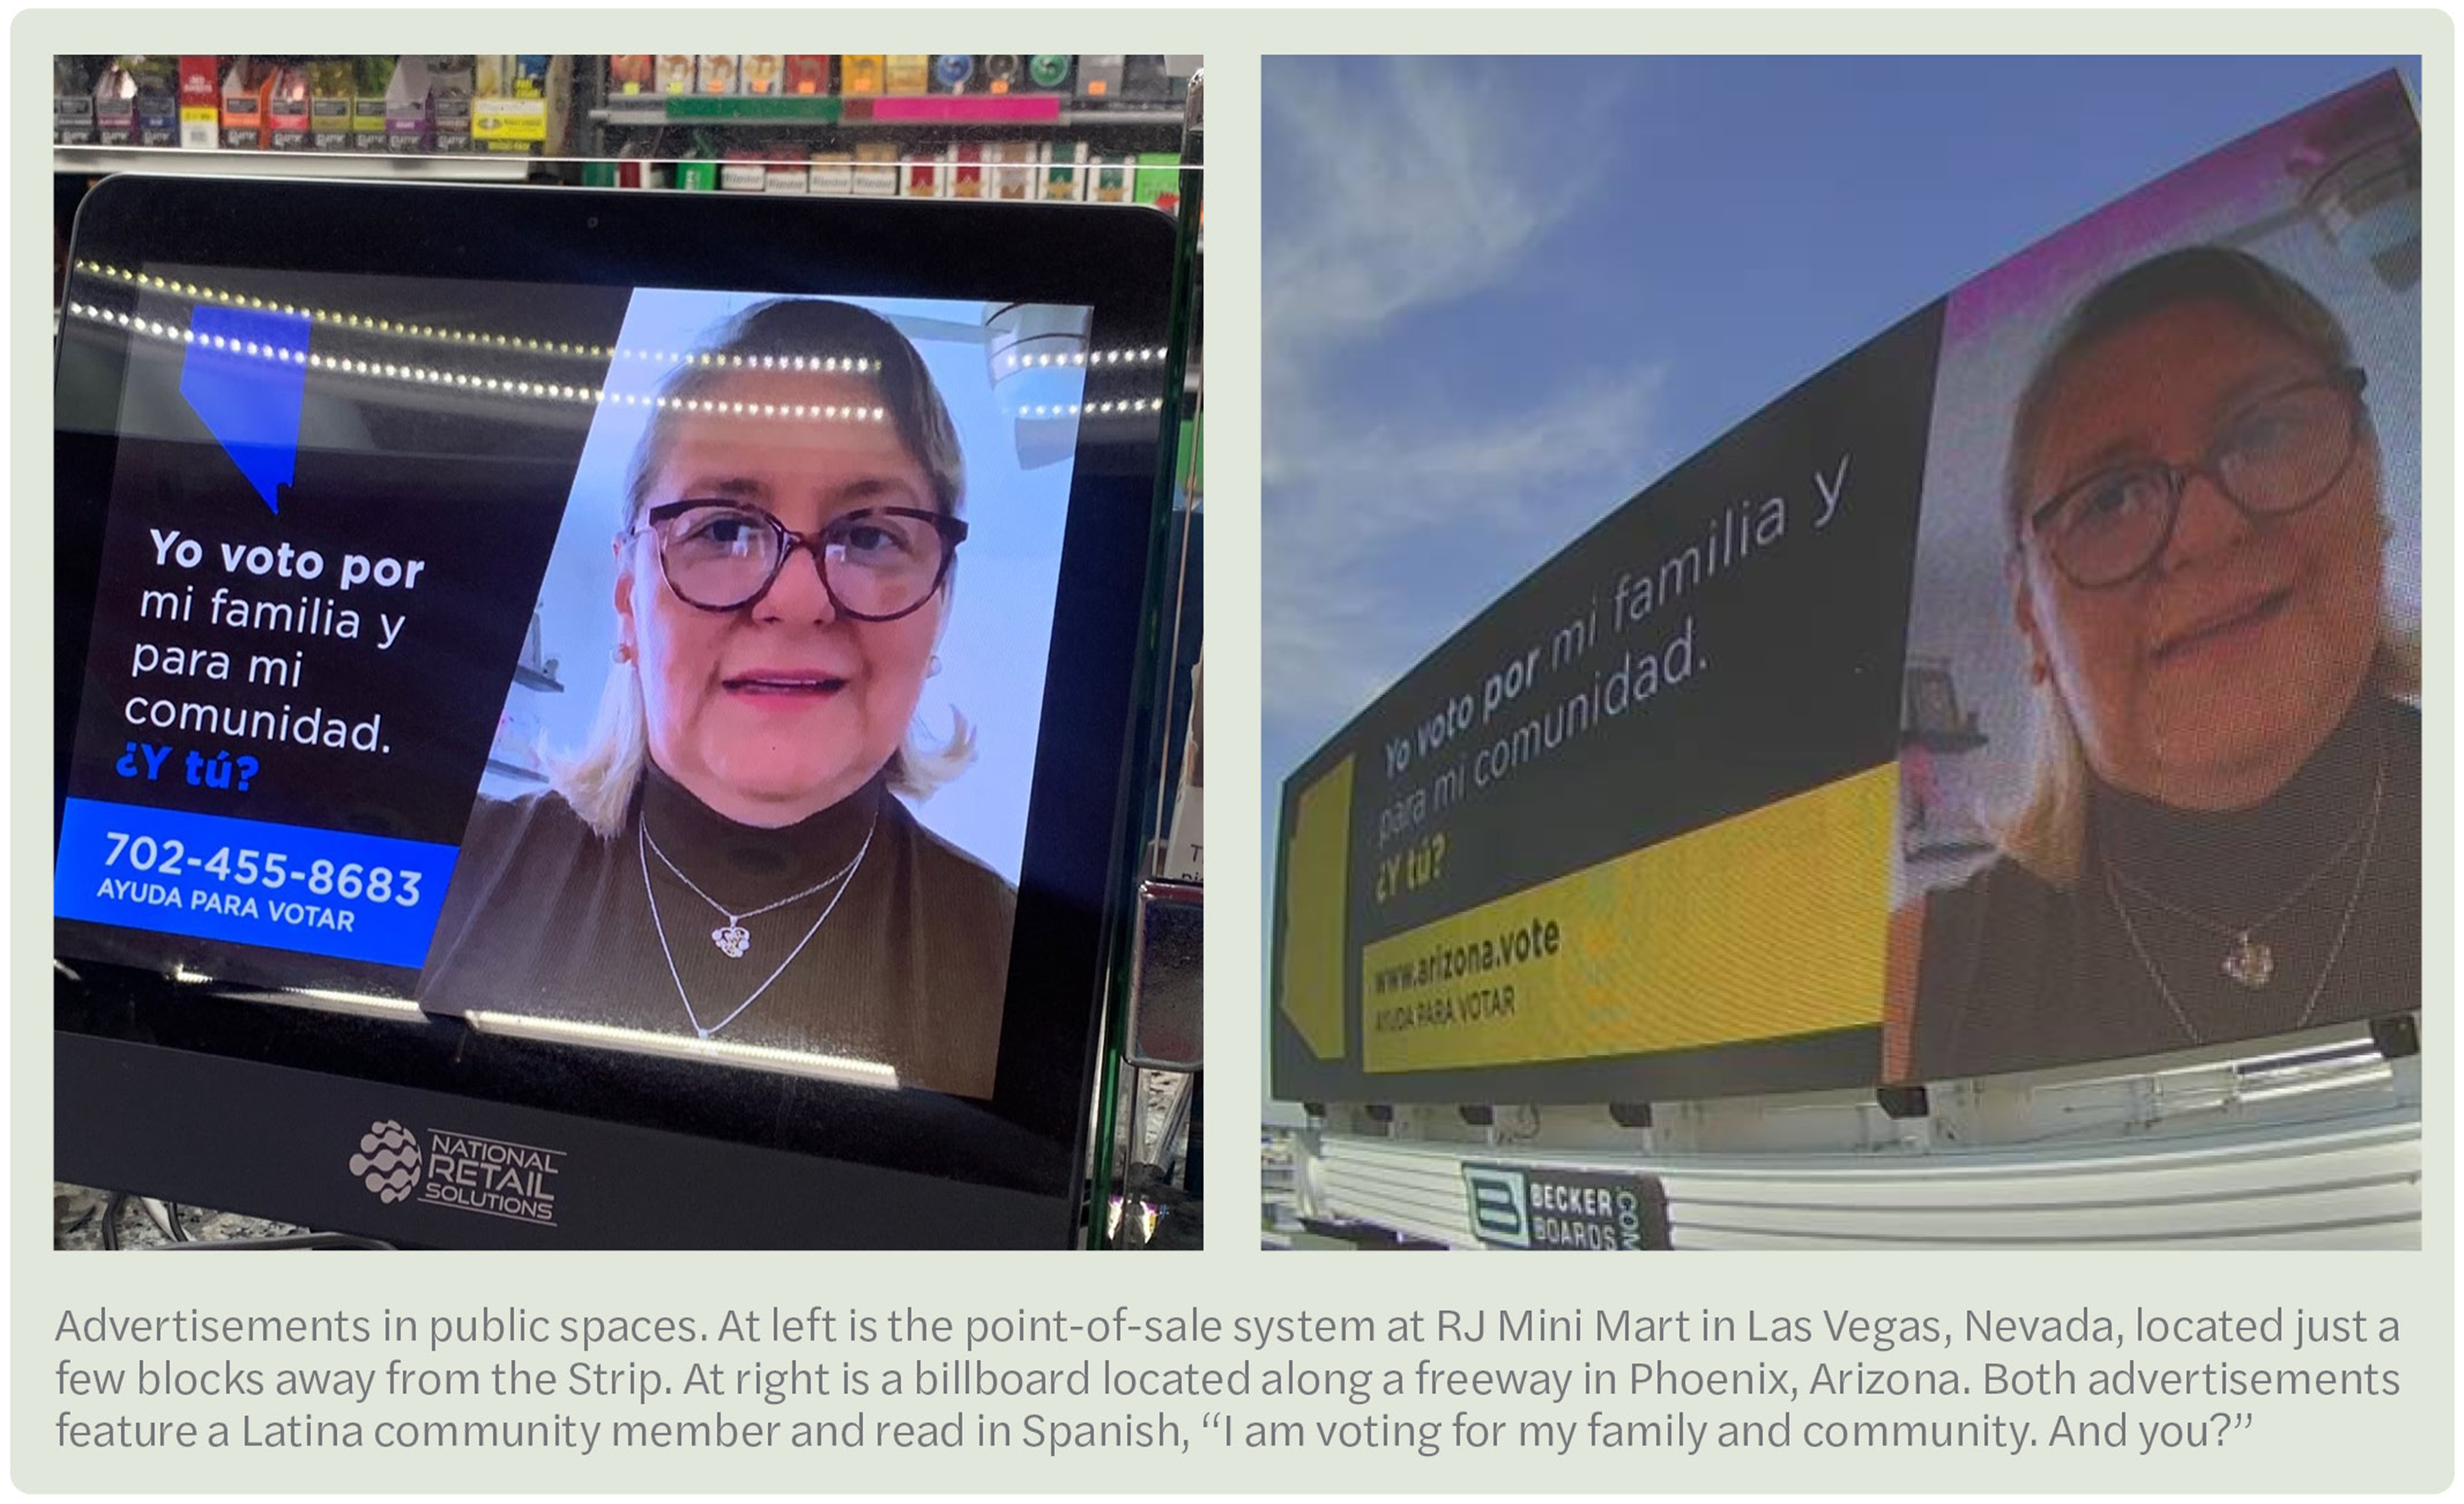 """Advertisements in public spaces. At left is the point-of-sale system at RJ Mini Mart in Las Vegas, Nevada, located just a few blocks away from the Strip. At right is a billboard located along a freeway in Phoenix, Arizona. Both advertisements feature a Latina community member and read in Spanish, """"I am voting for my family and community. And you?"""""""